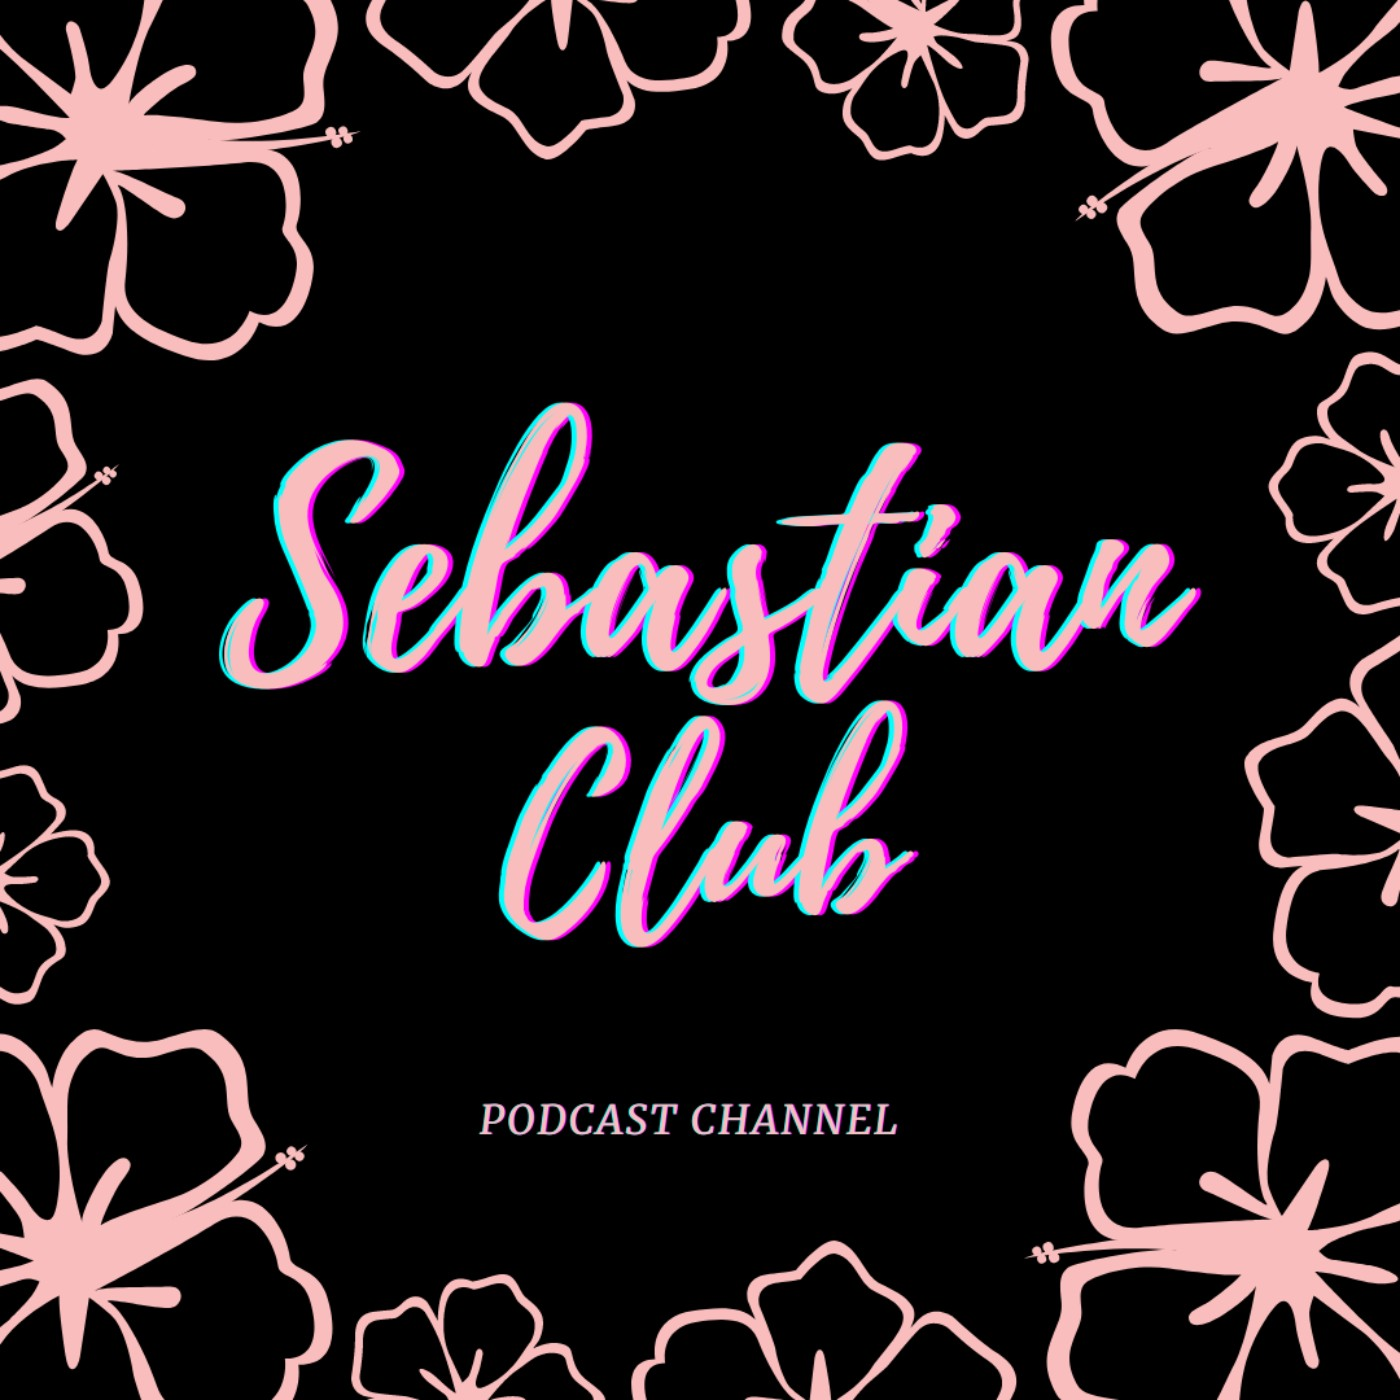 Welcome to Sebastian club